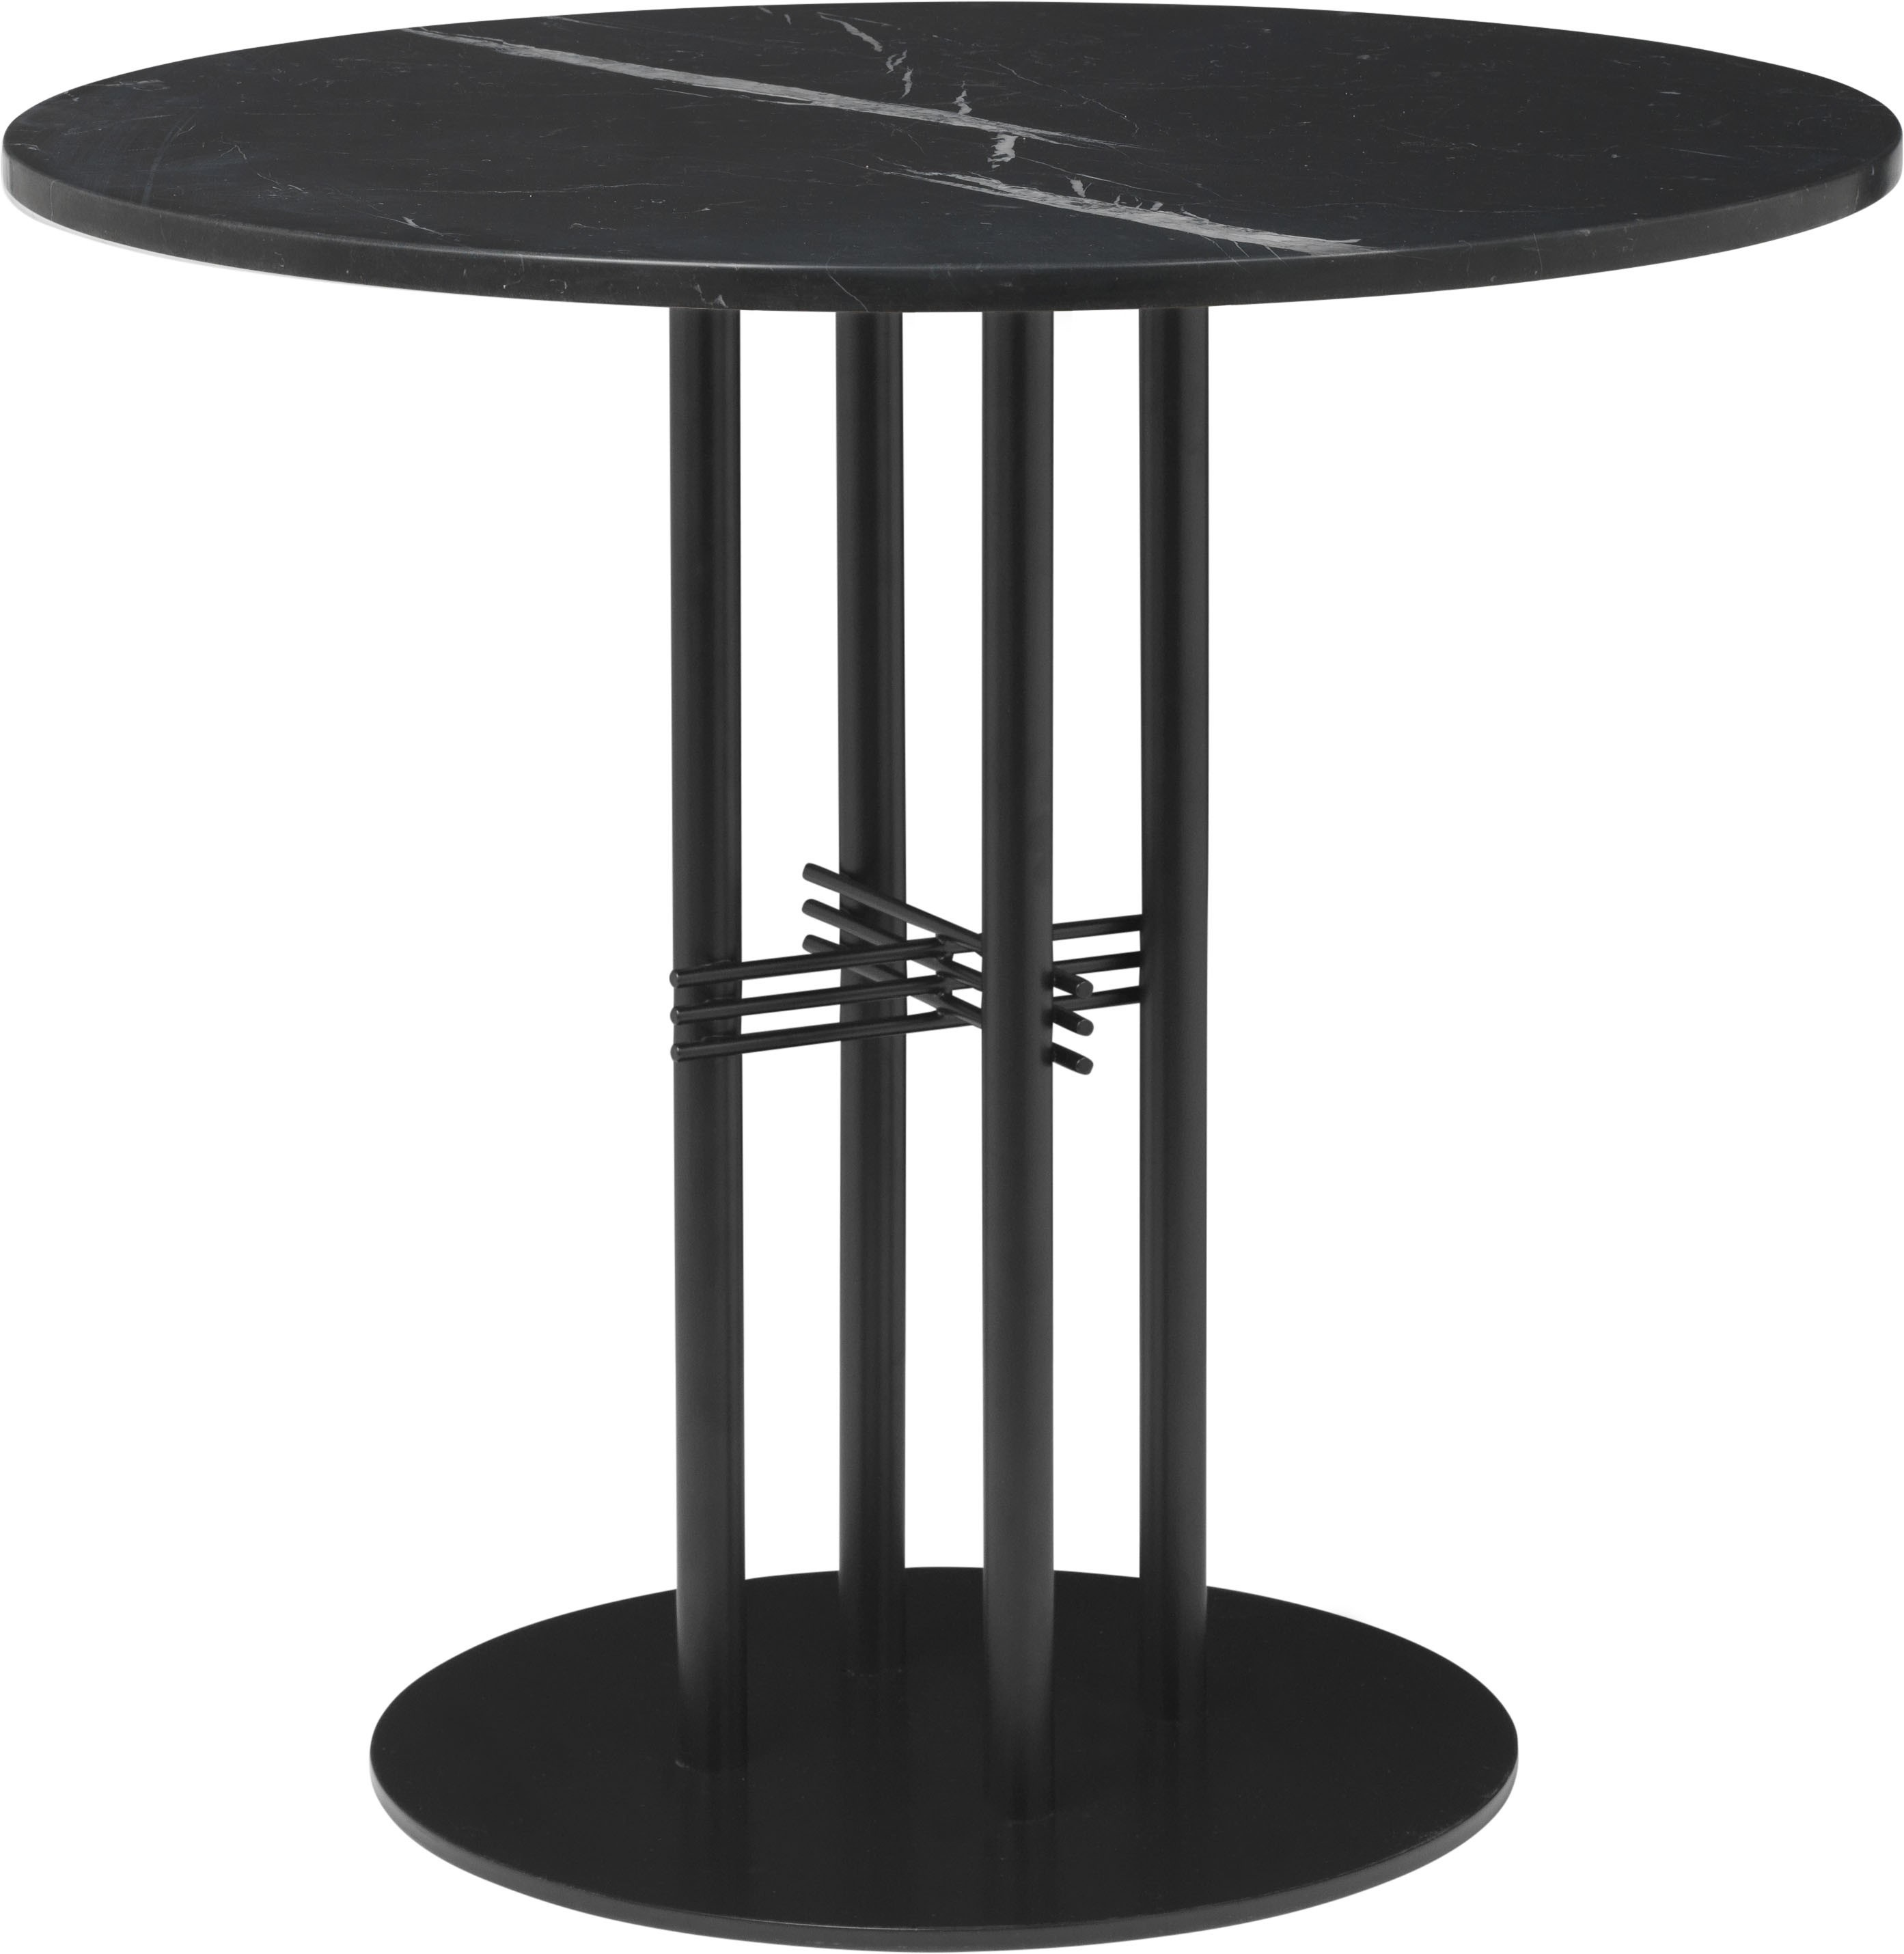 GUBI TS Column Round Dining Table - Ø80 cm